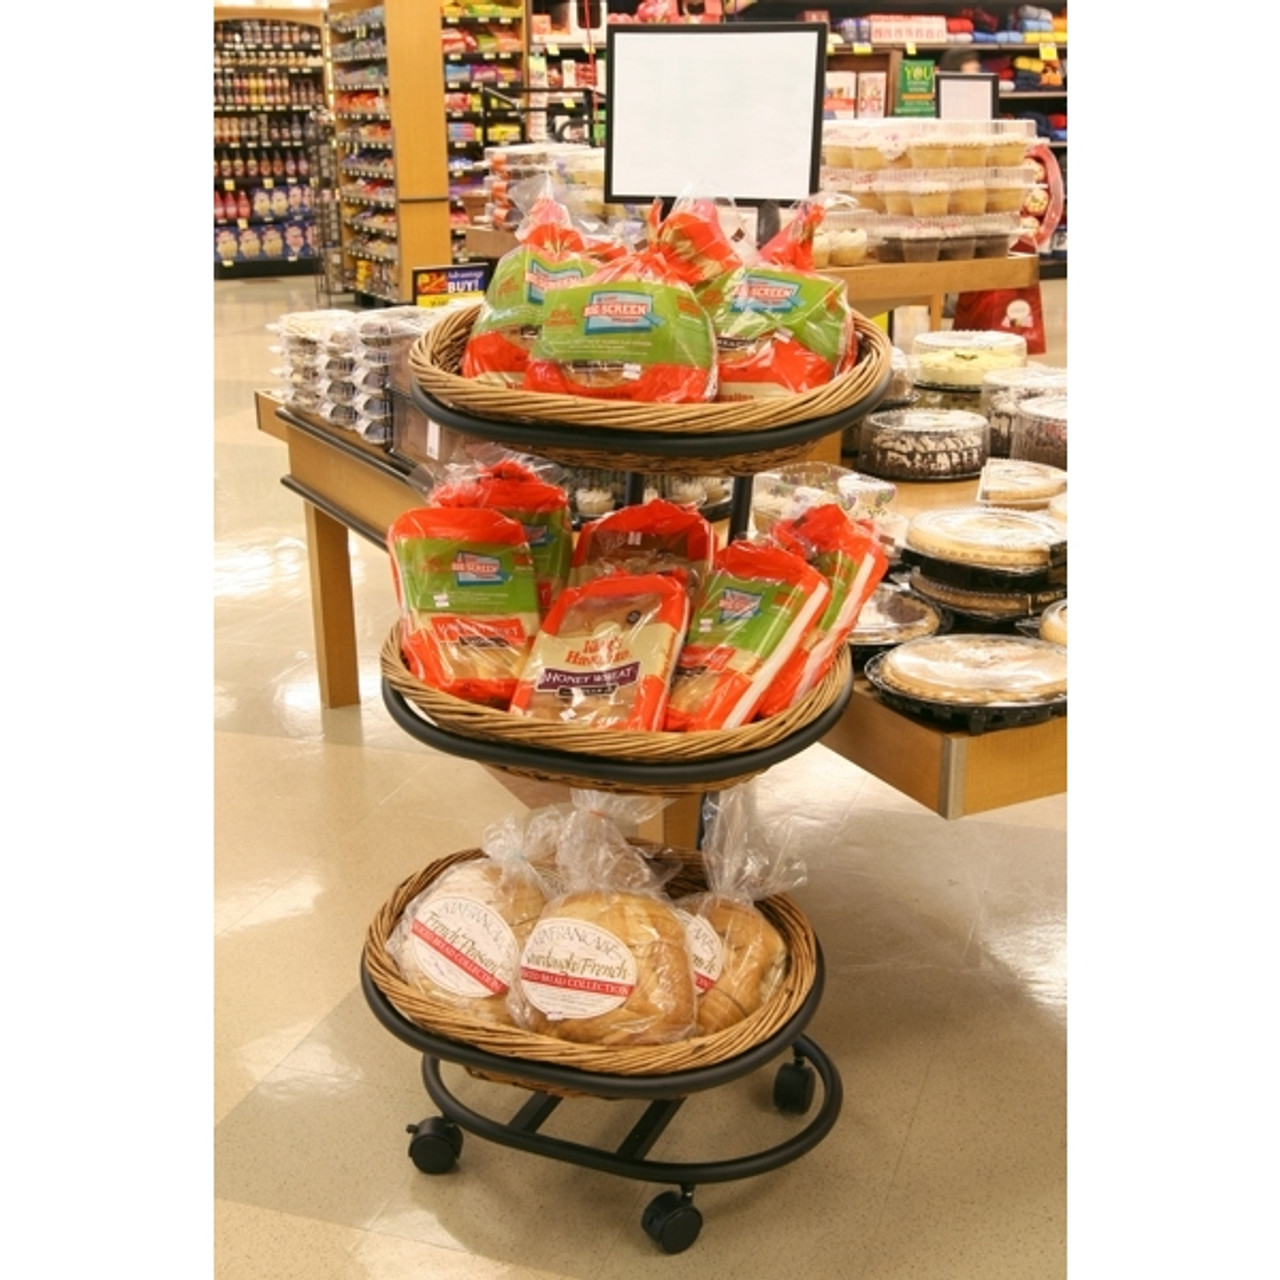 Willow Basket Floor Display Rack - (3) Shelves - Rolling Wheels